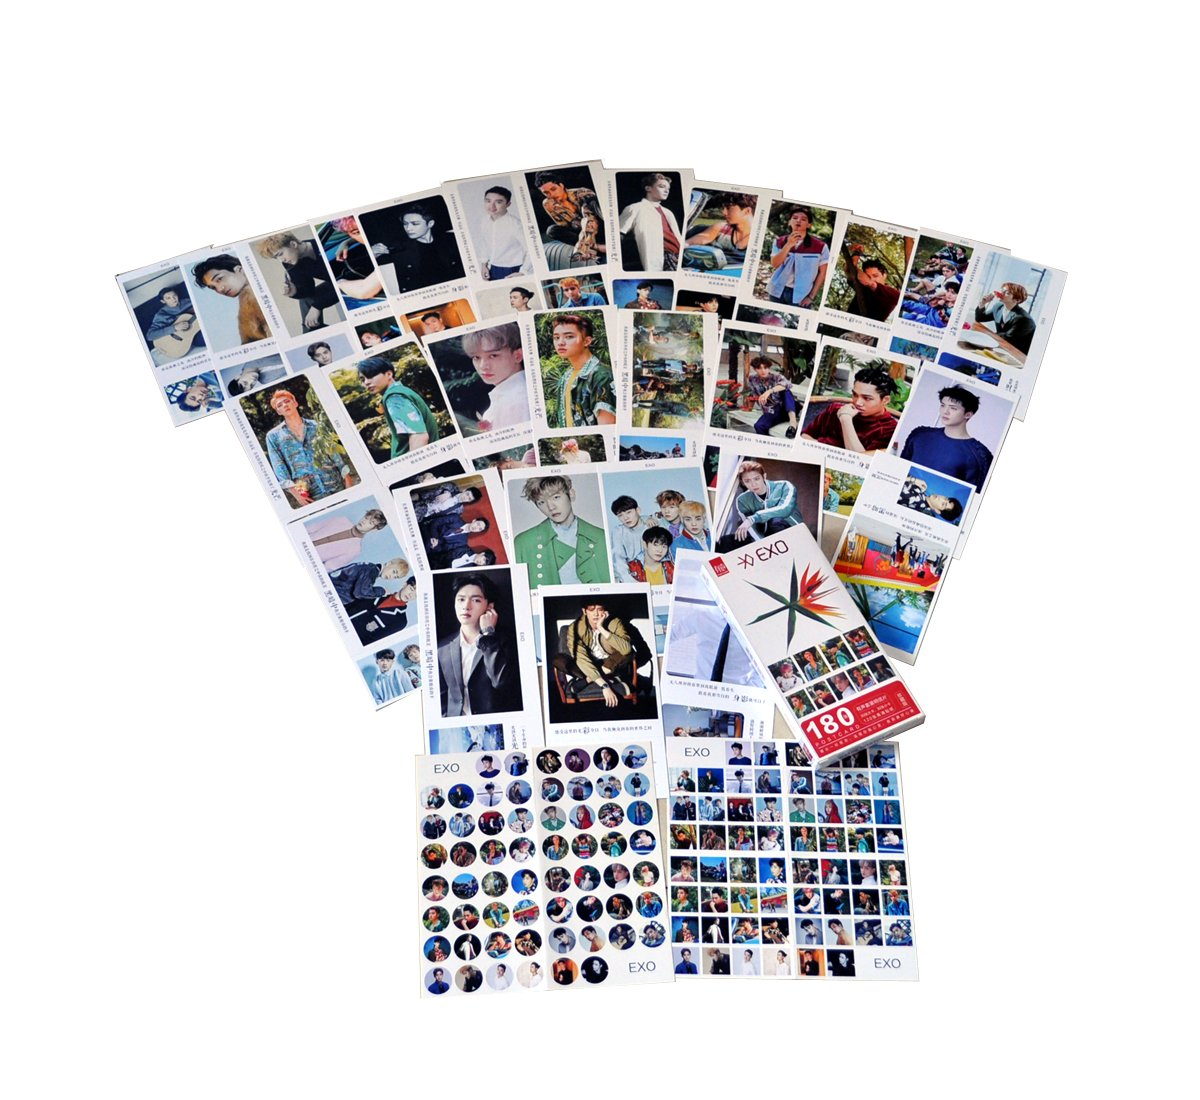 KingYang KPOP EXO postcard with lomo cards (EXO-THE WAR)